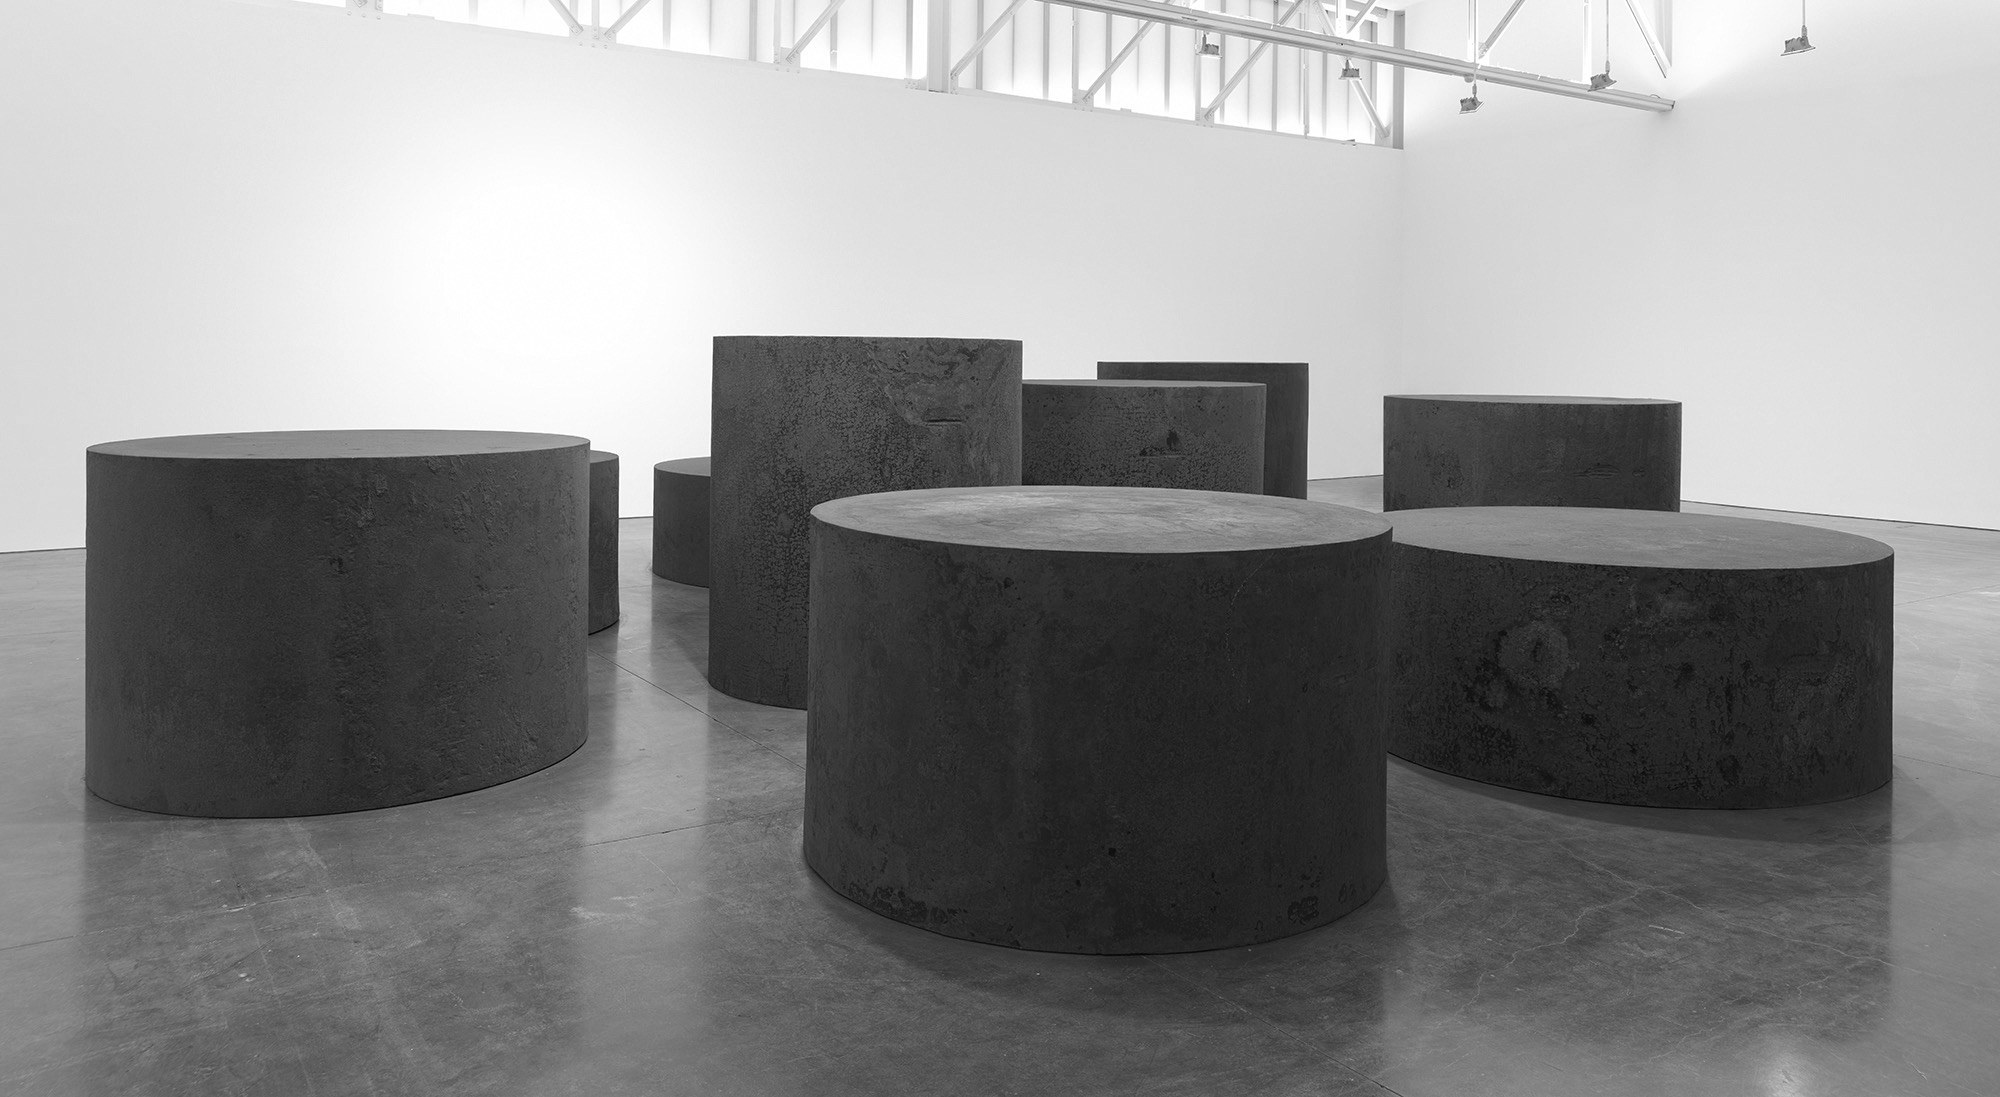 Richard Serra: Triptychs and Diptychs